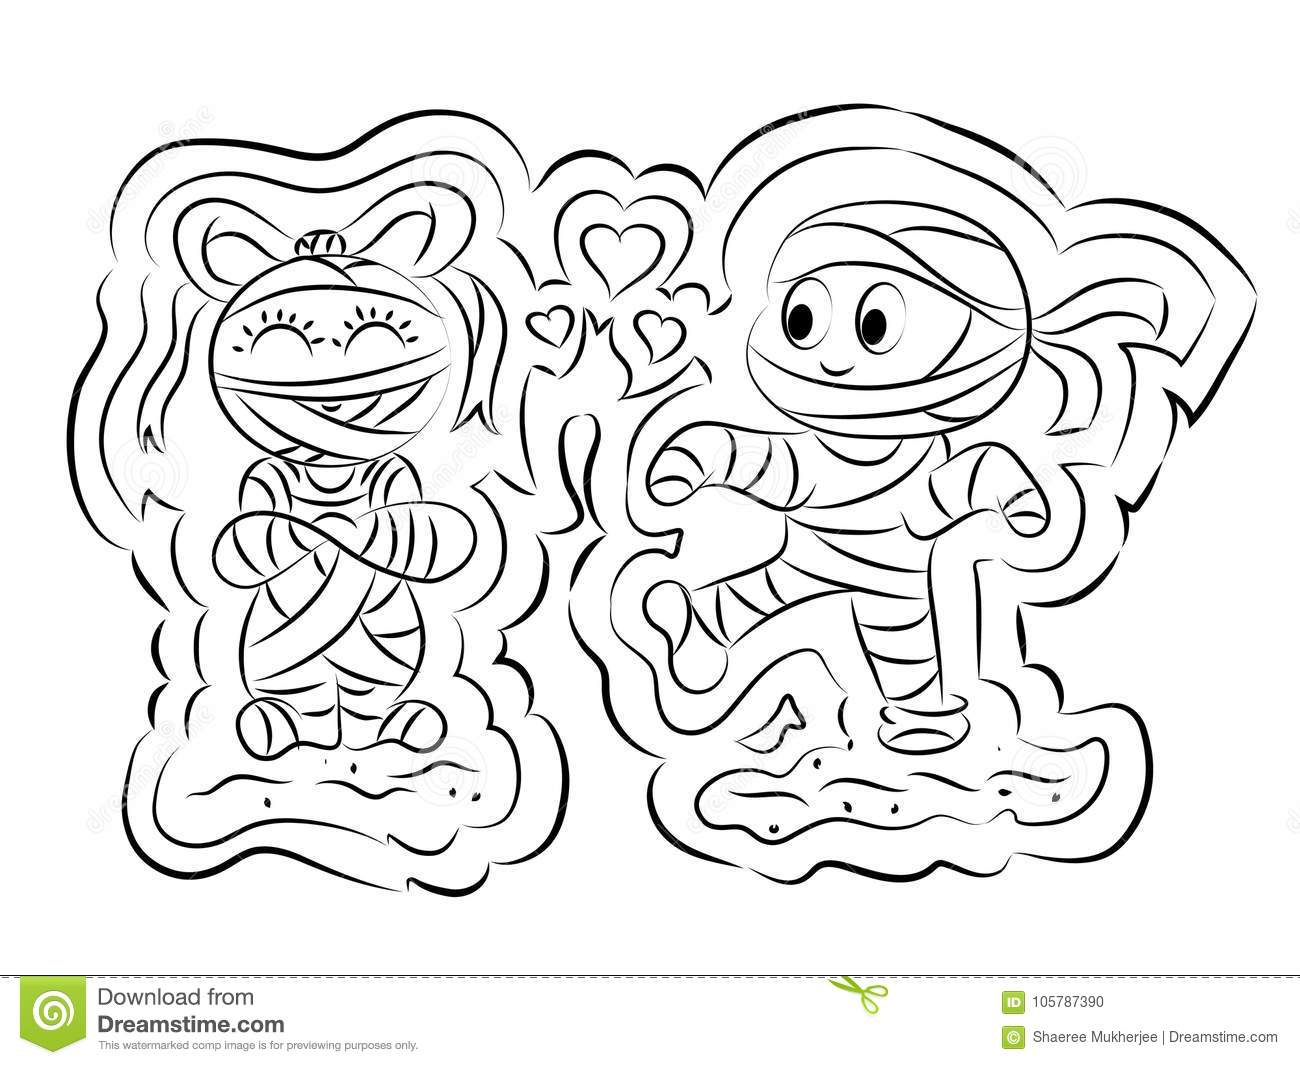 Mummy Coloring Page For Kids Stock Vector - Illustration of ...